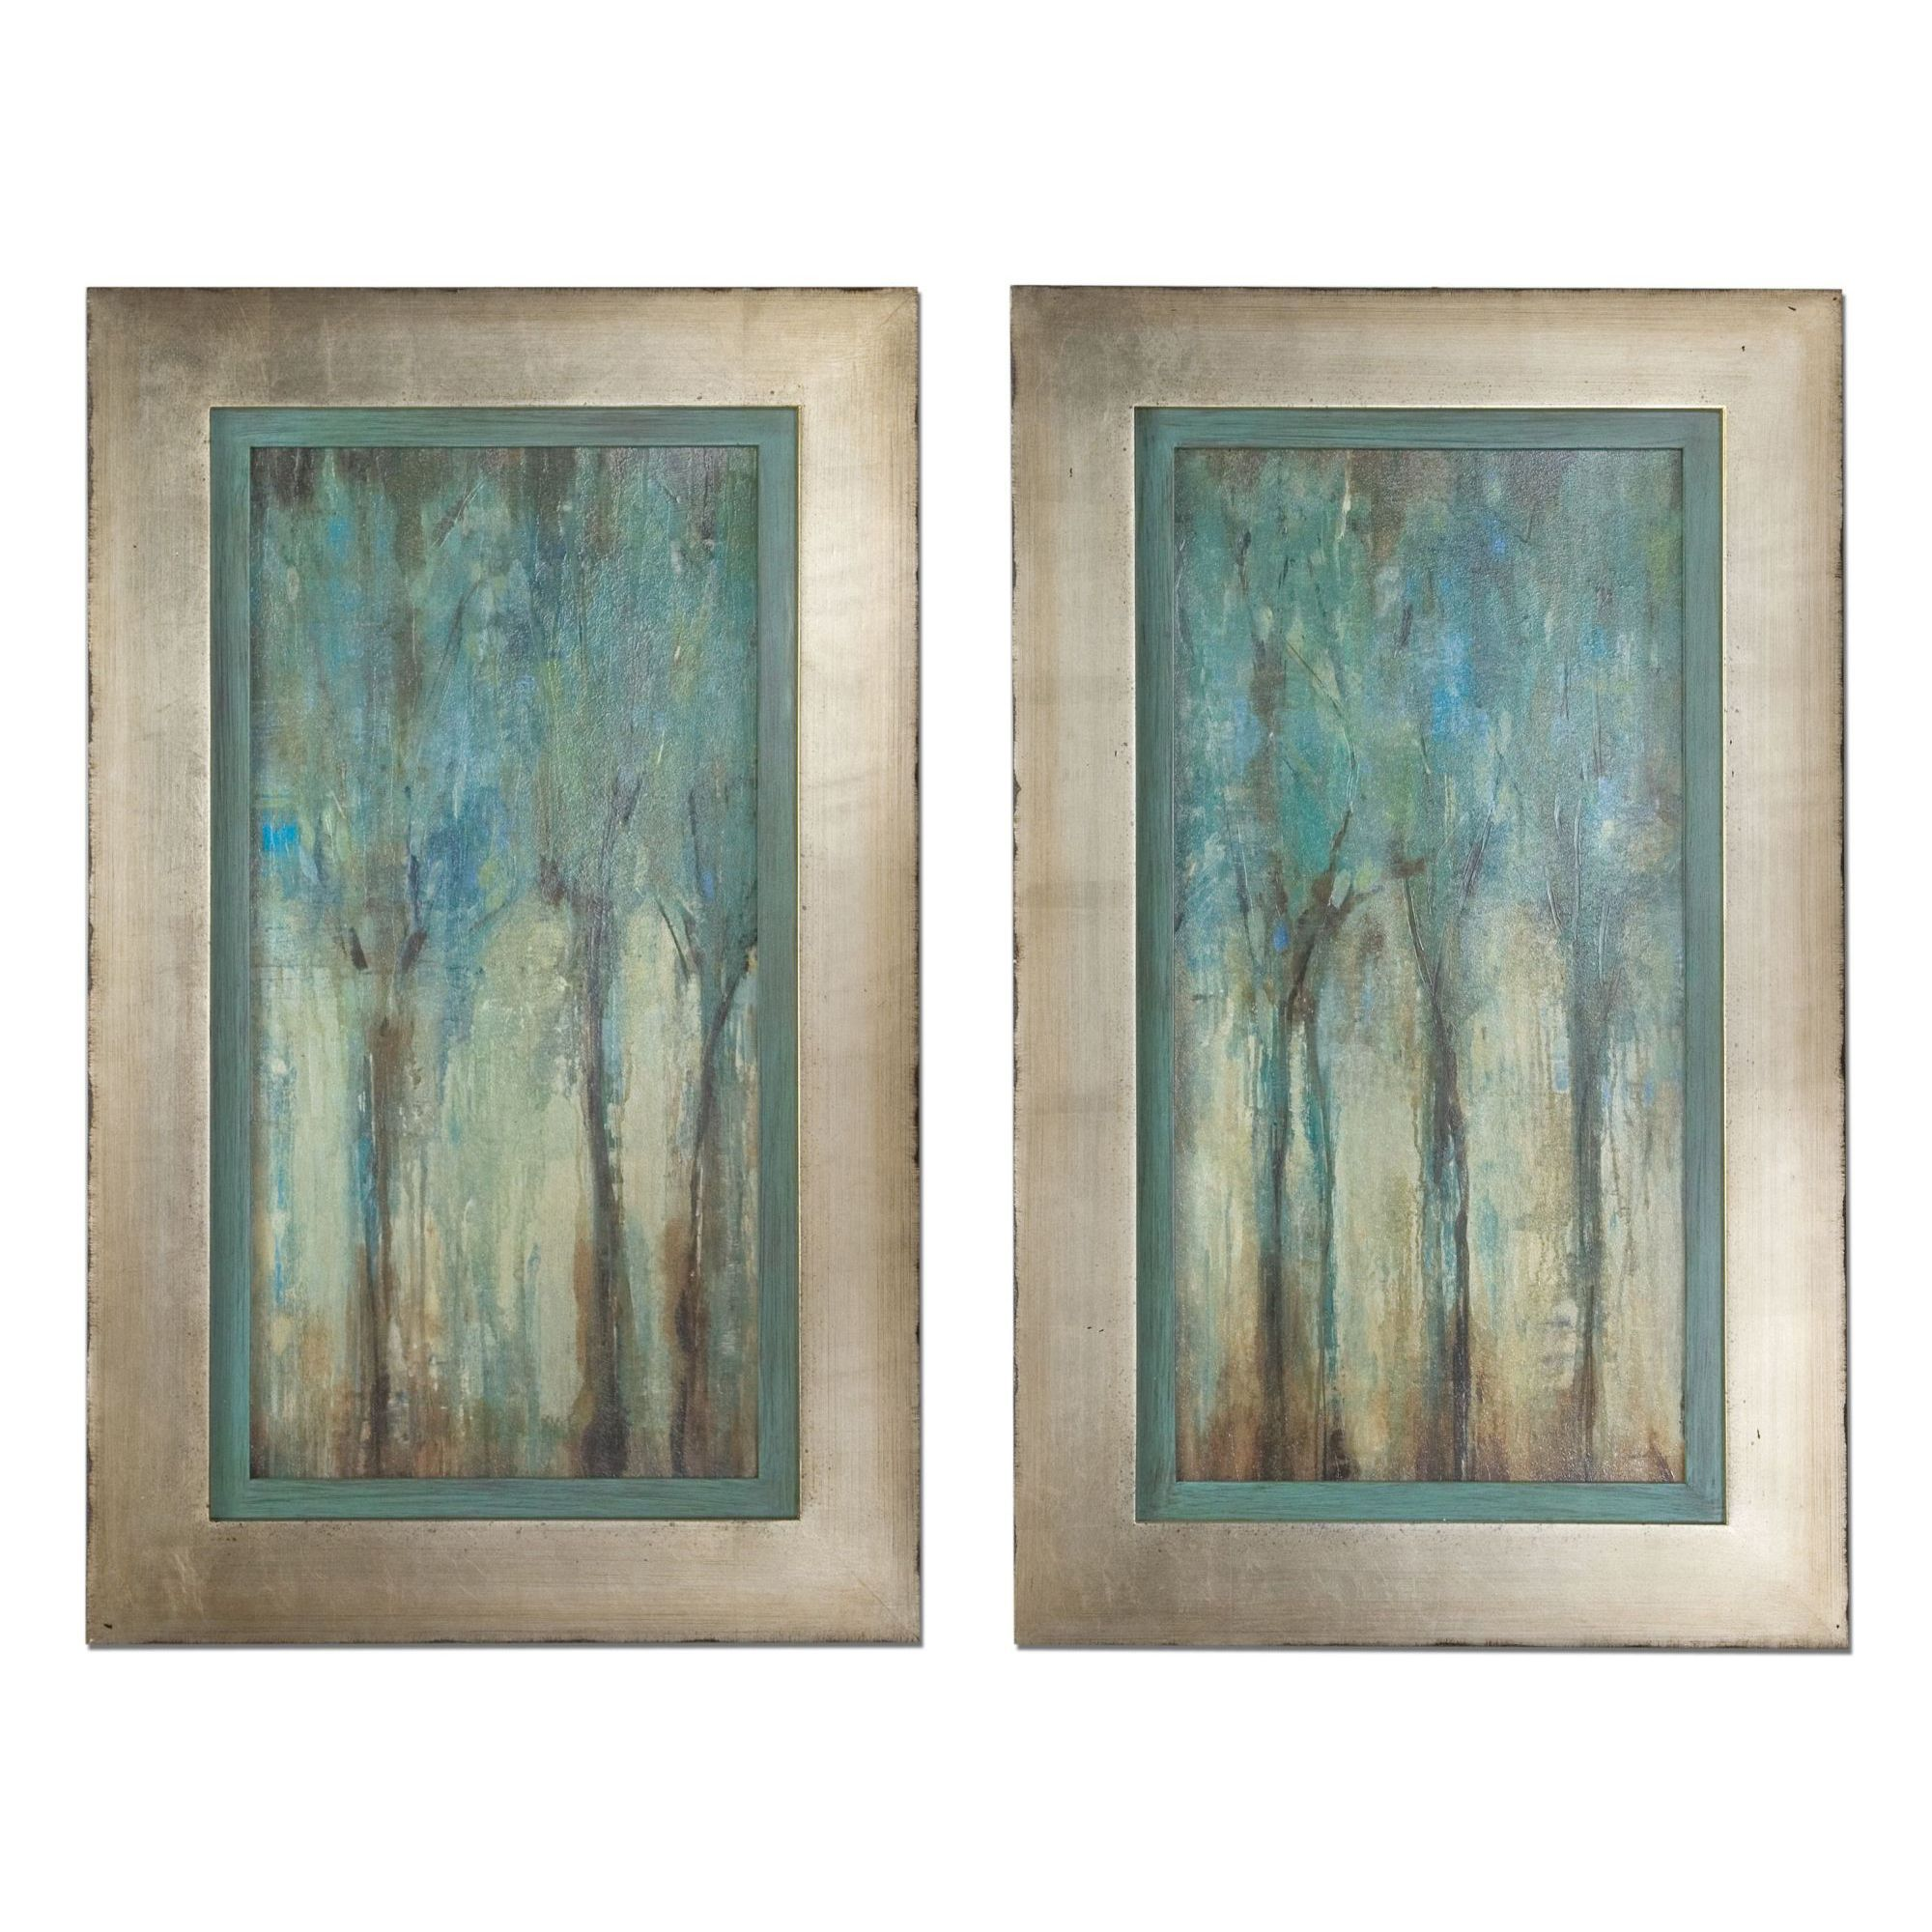 Add eyecatching elegance with this framed wall art set featuring